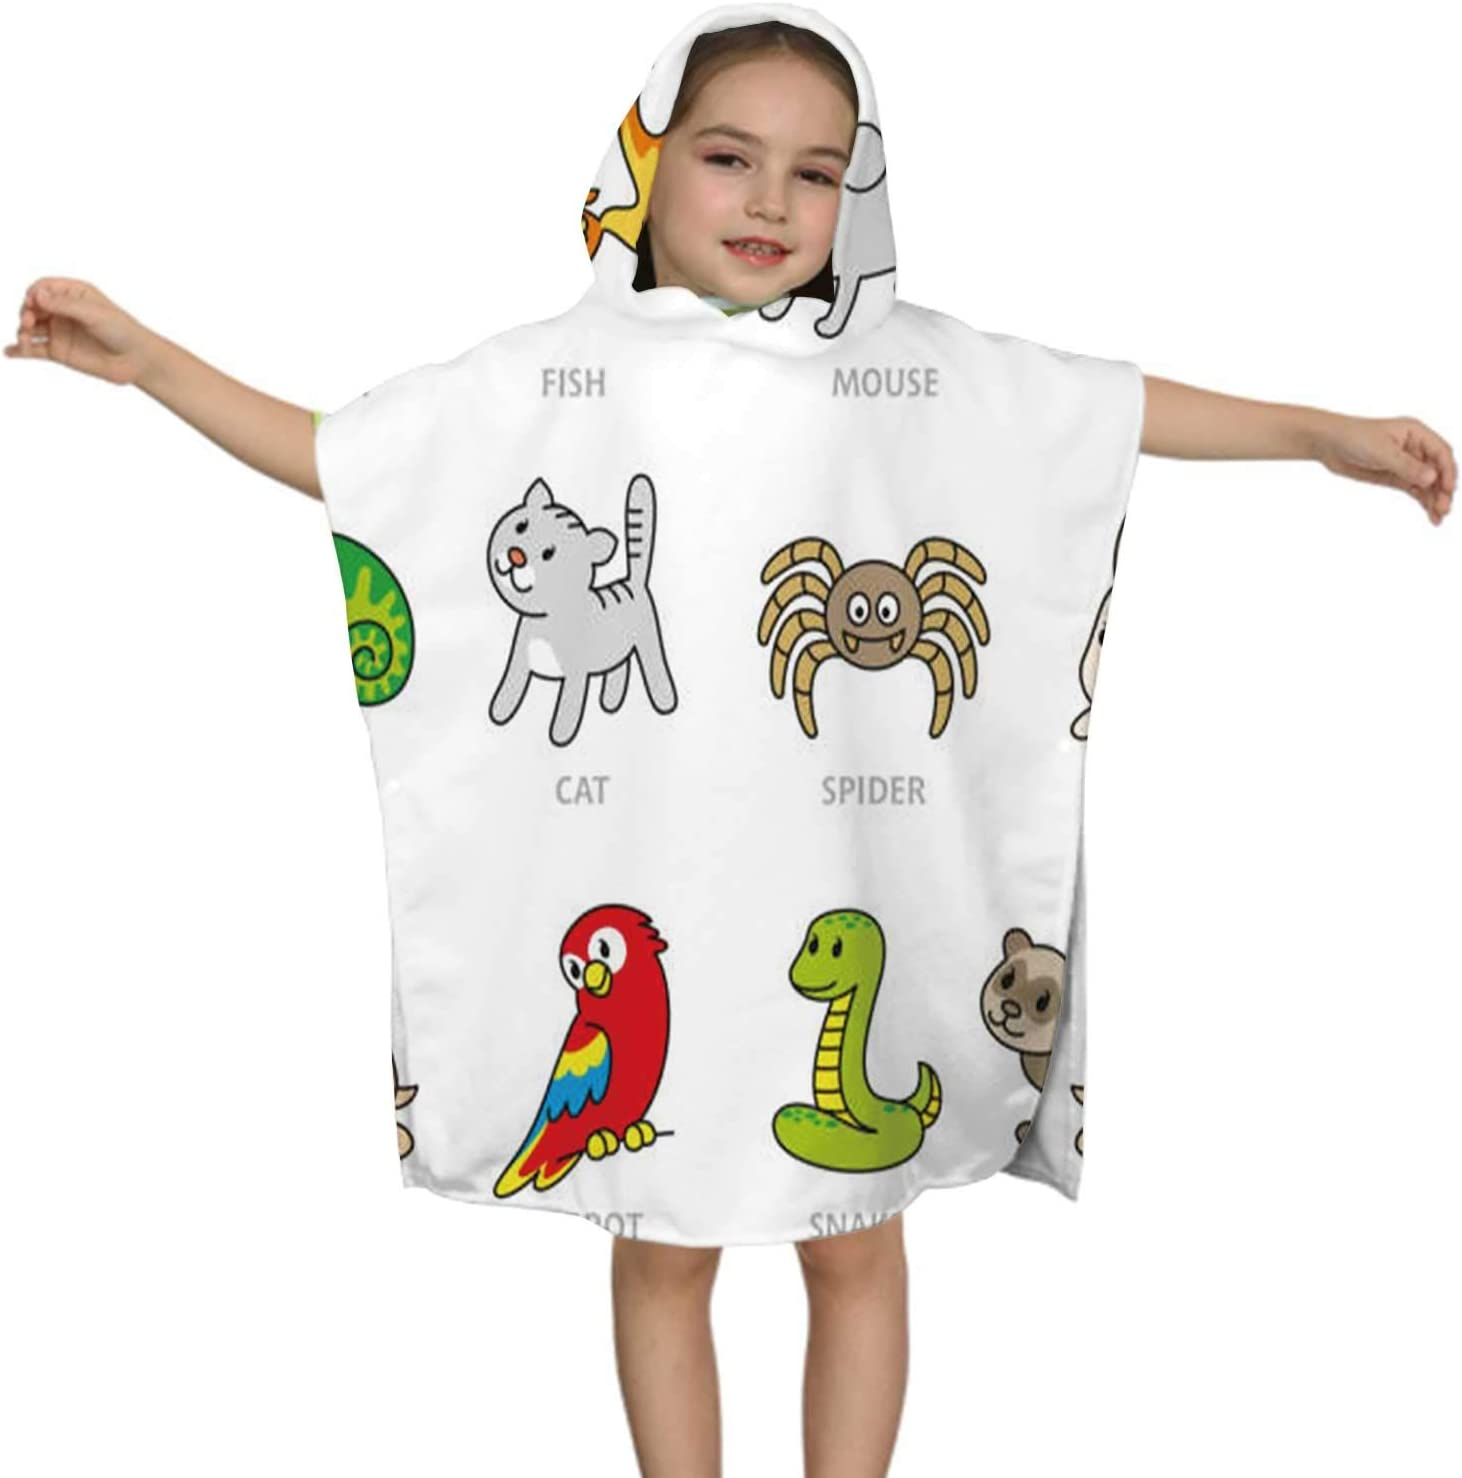 C COABALLA Pet Shop,Kids Hooded Beach Towel Unisex Ages 2-7 Boy Quick Dry -100% Microfiber Set Types of Pets Animal